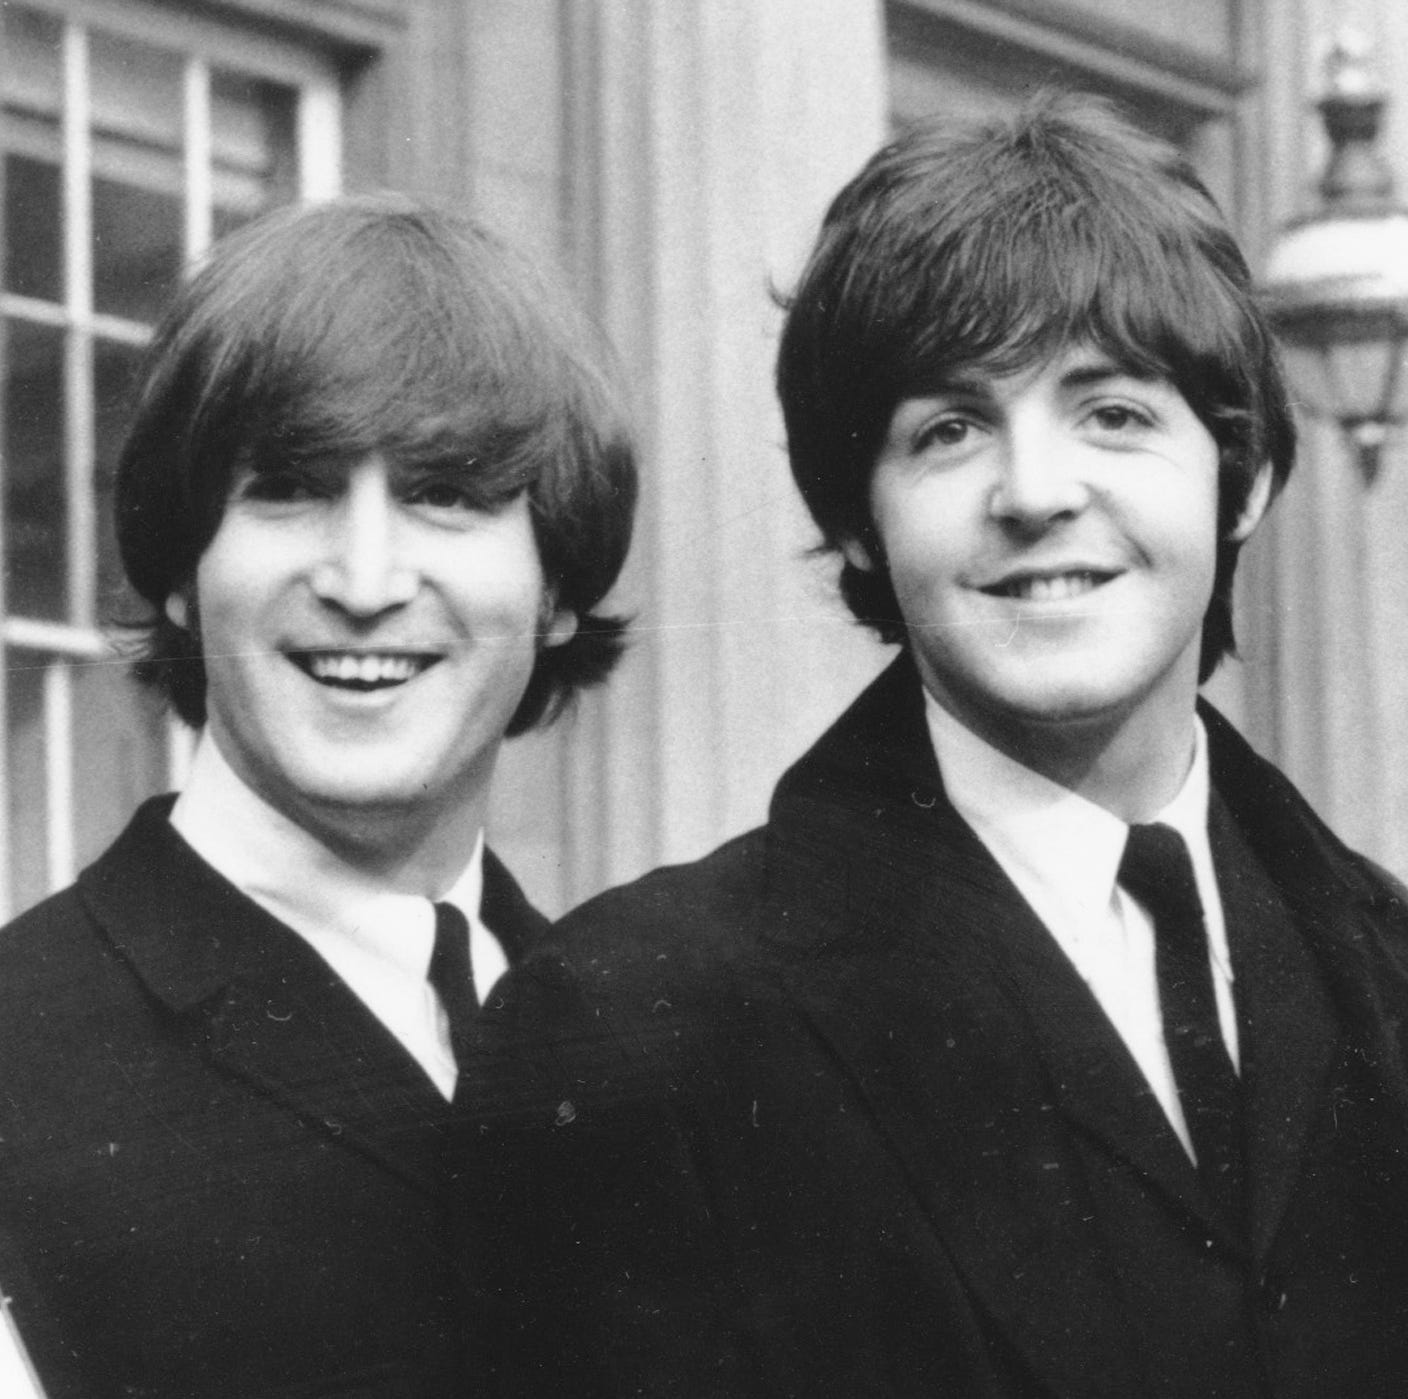 John Lennon, left, and Paul McCartney have some strong genes.